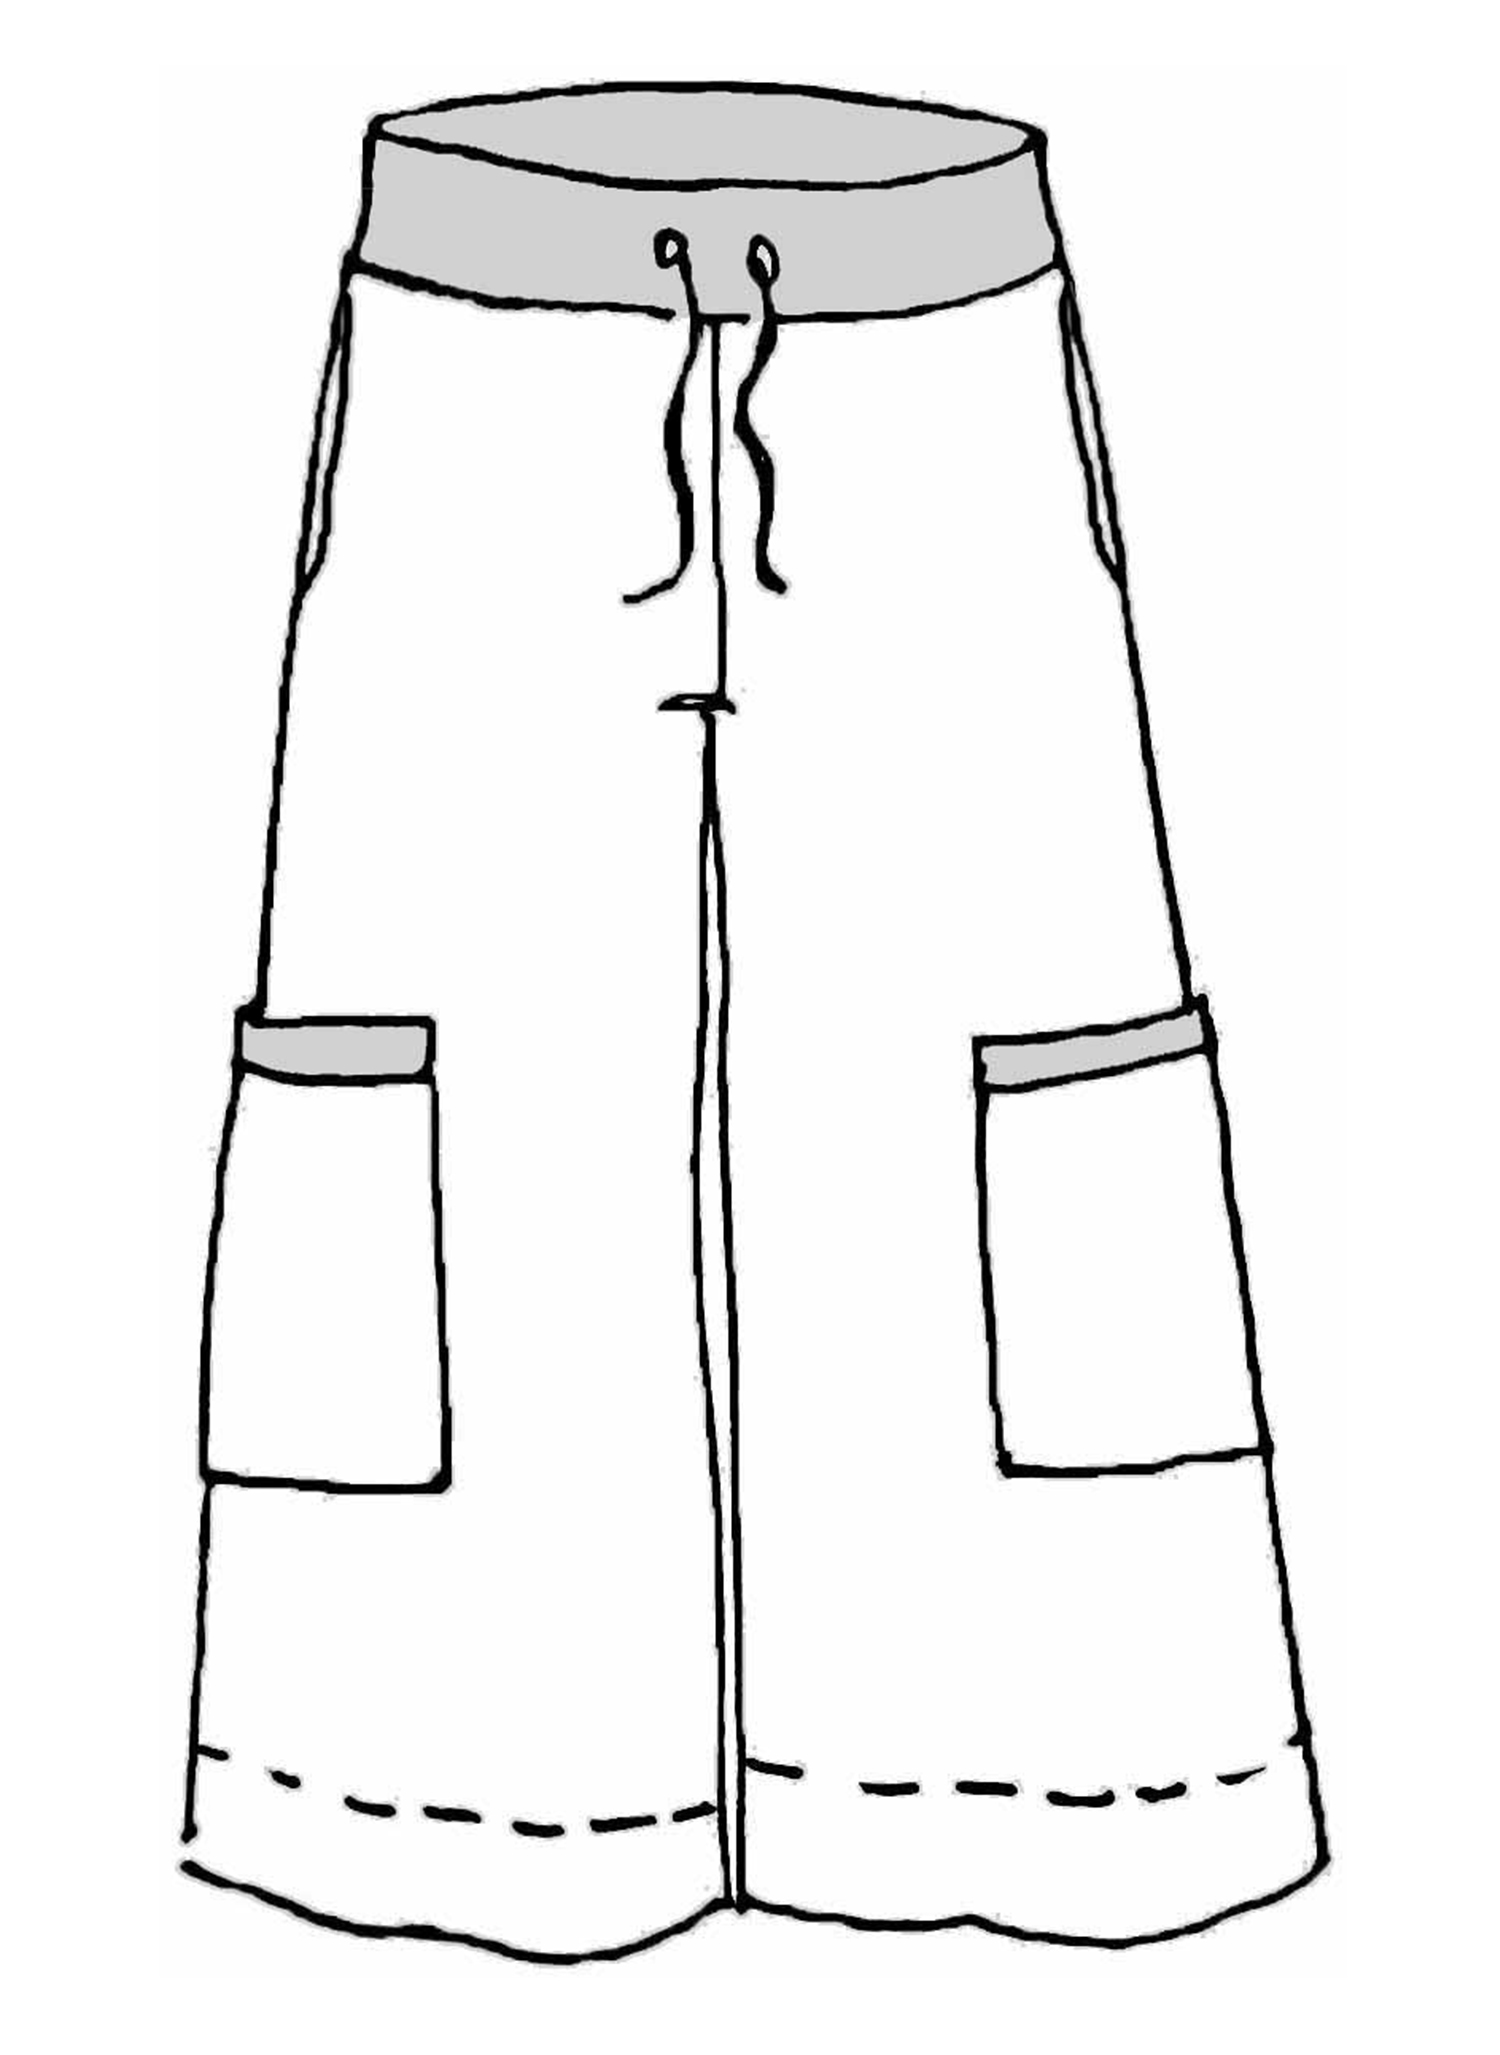 Full Time Pant sketch image